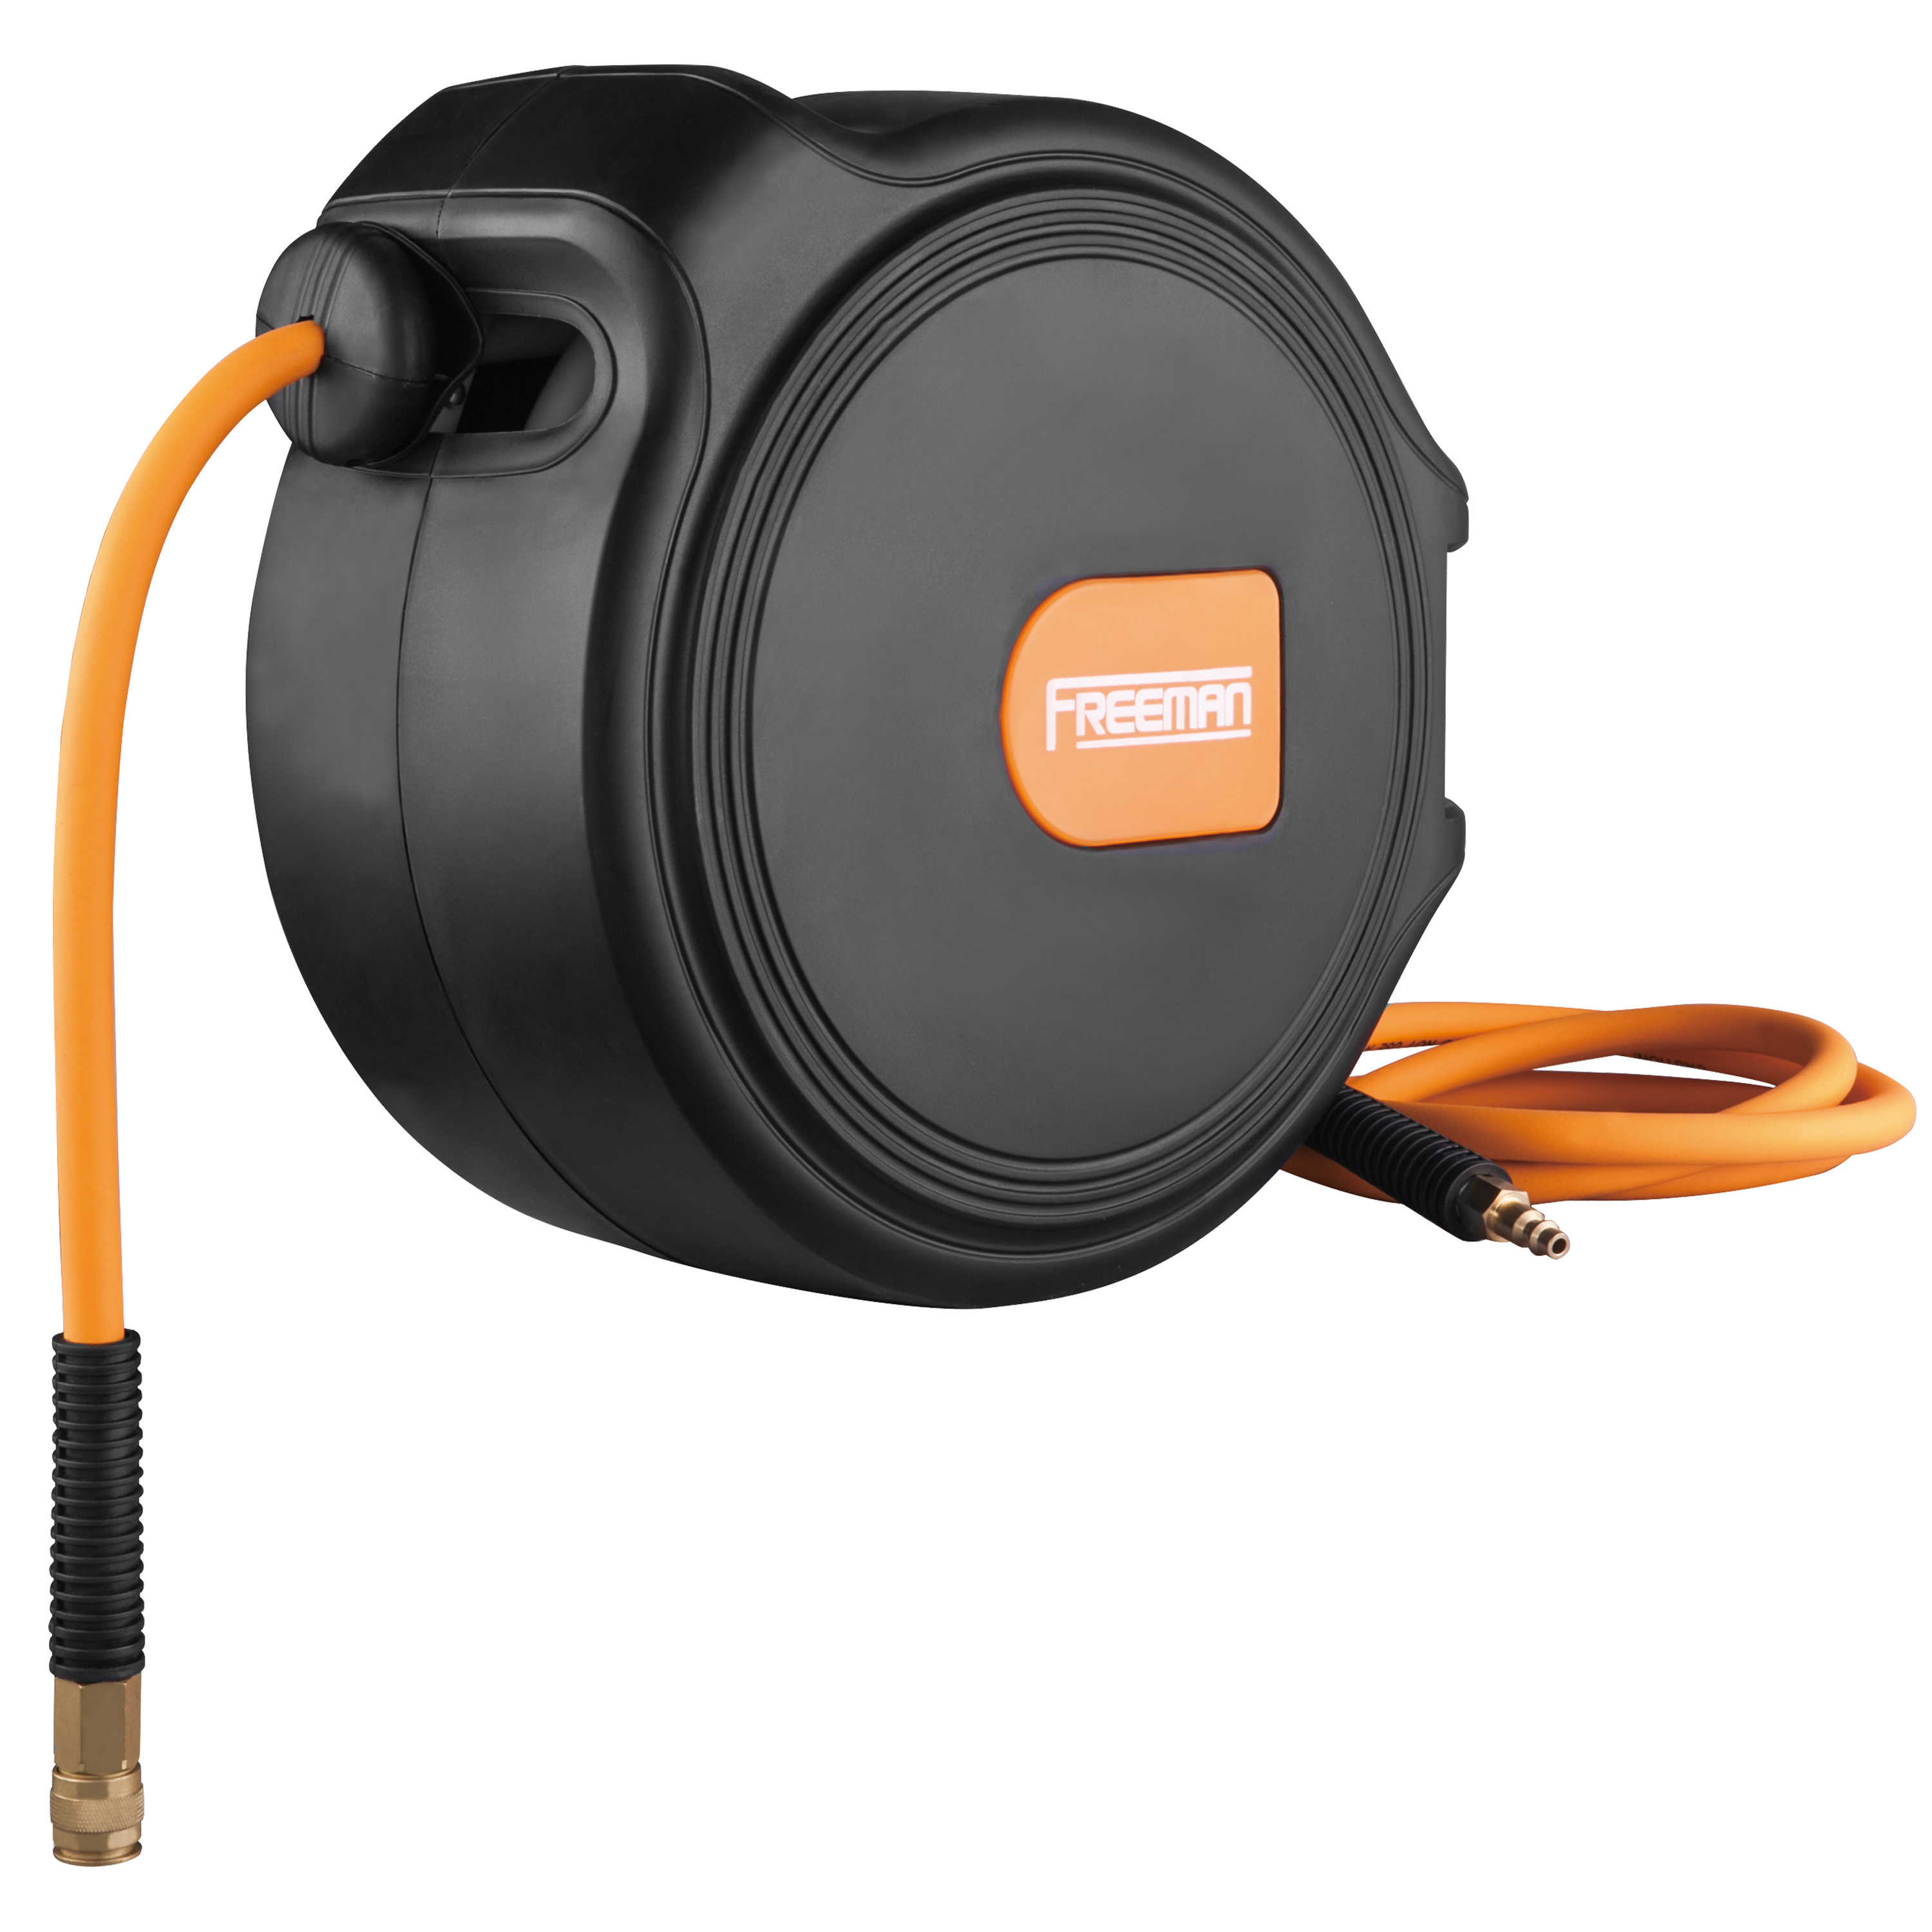 Freeman 65 ft. Compact Retractable Air Hose Reel with 1/4' Hybrid Air Hose and 180º Swivel Wall Mount